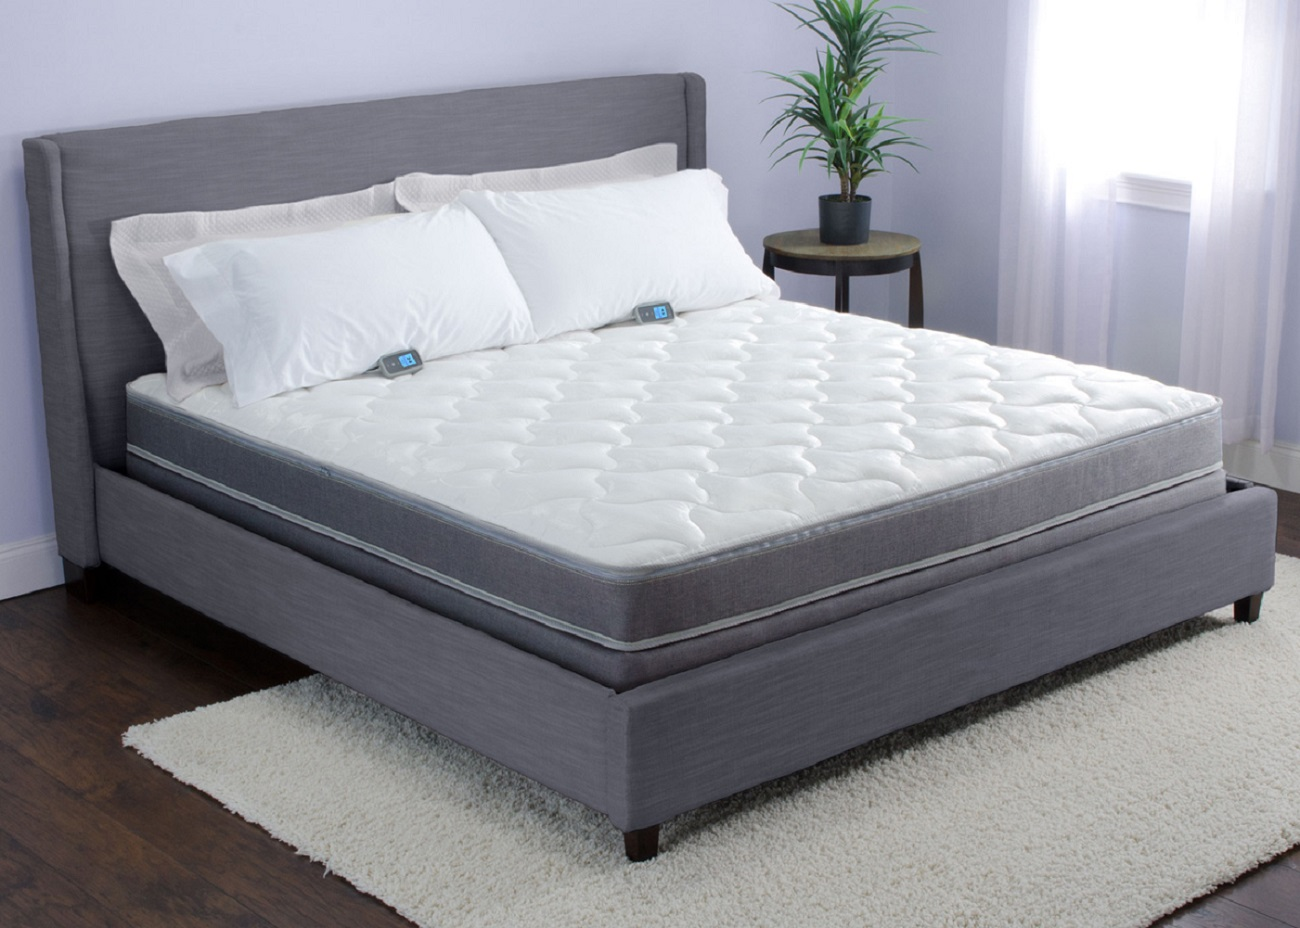 number bed pricing years magnificent mattress beds twin sagging for pad sleep